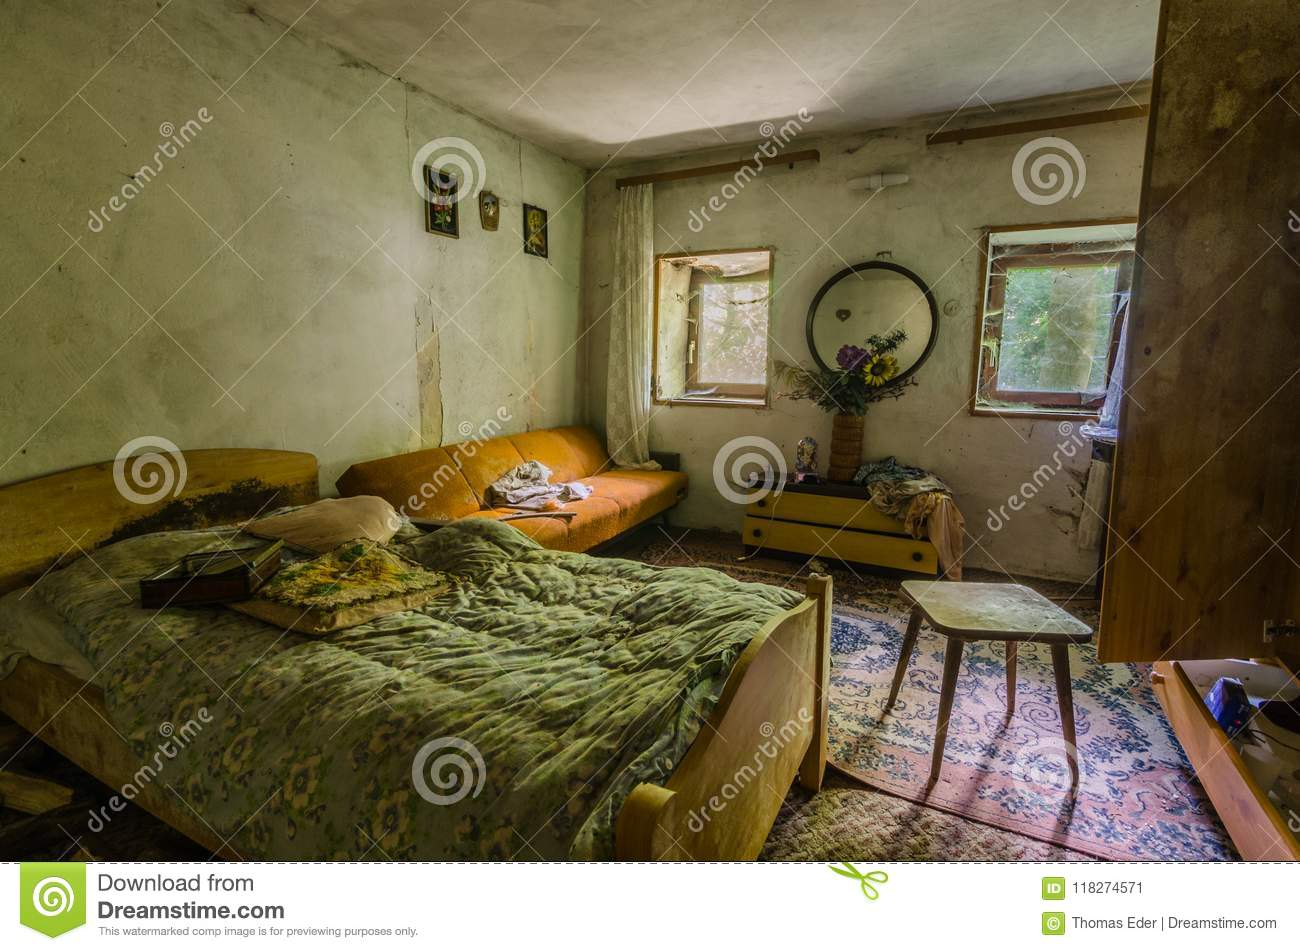 Bedroom Of House In The Forest Stock Image Image Of Villa Expire 118274571